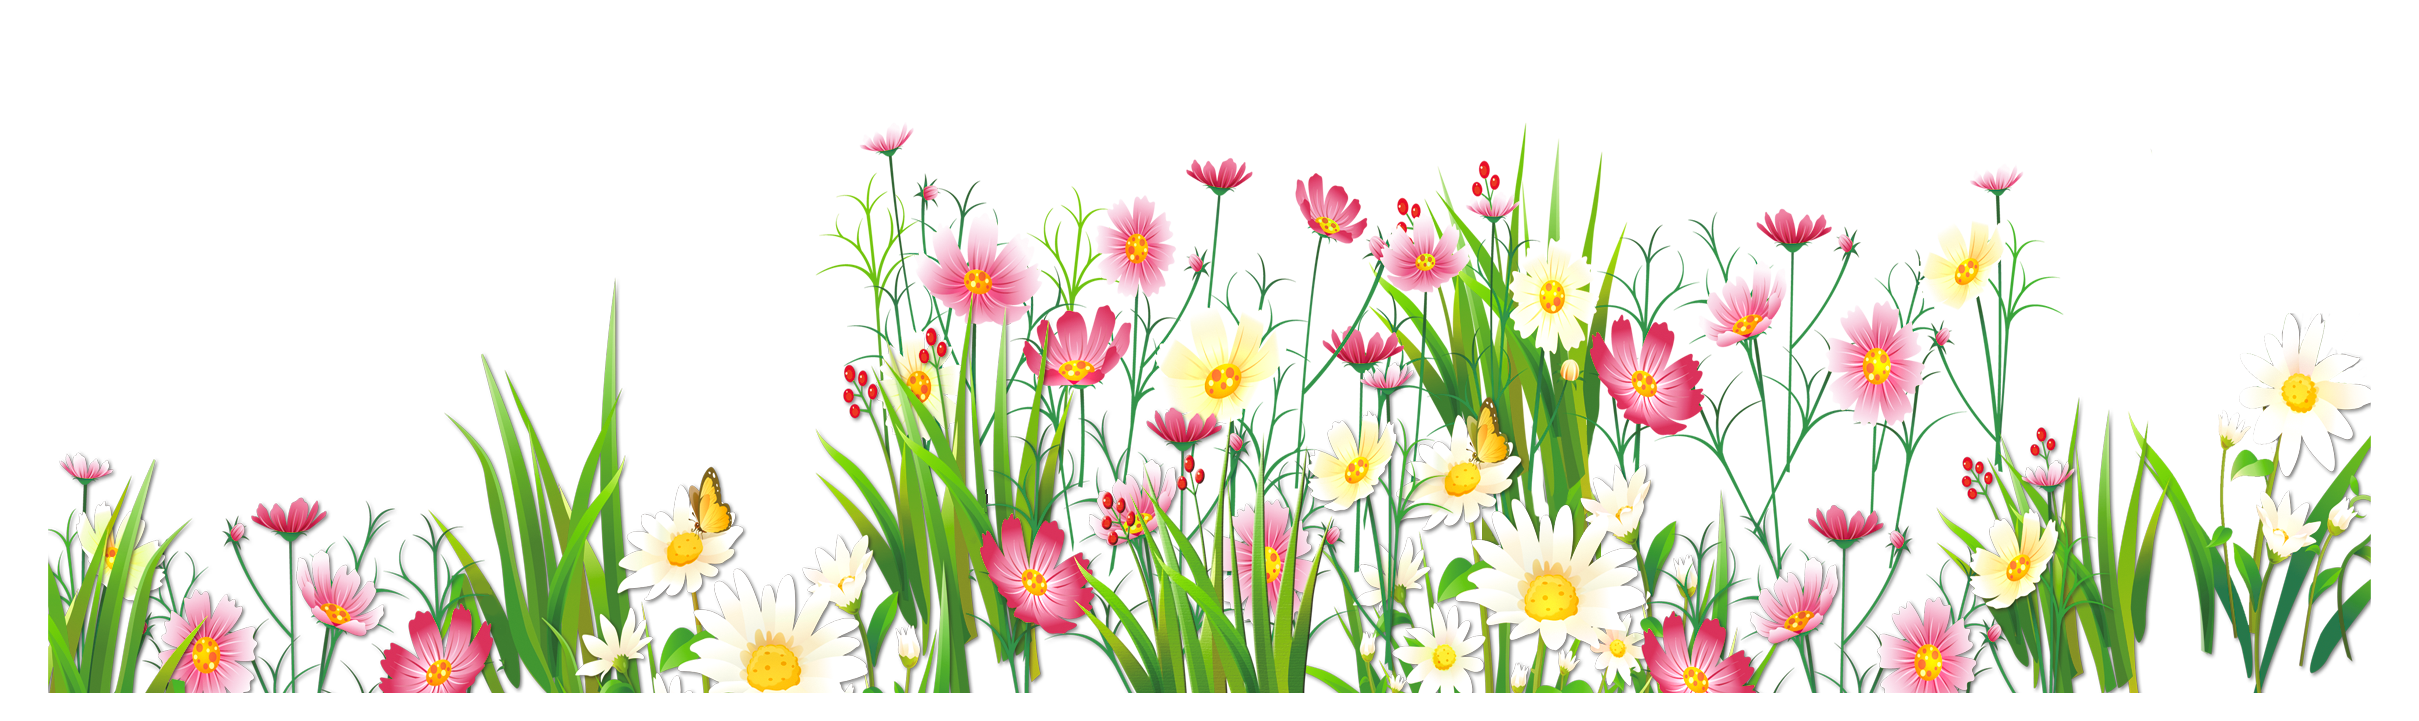 Gardener clipart transparent. Flowers and grass png